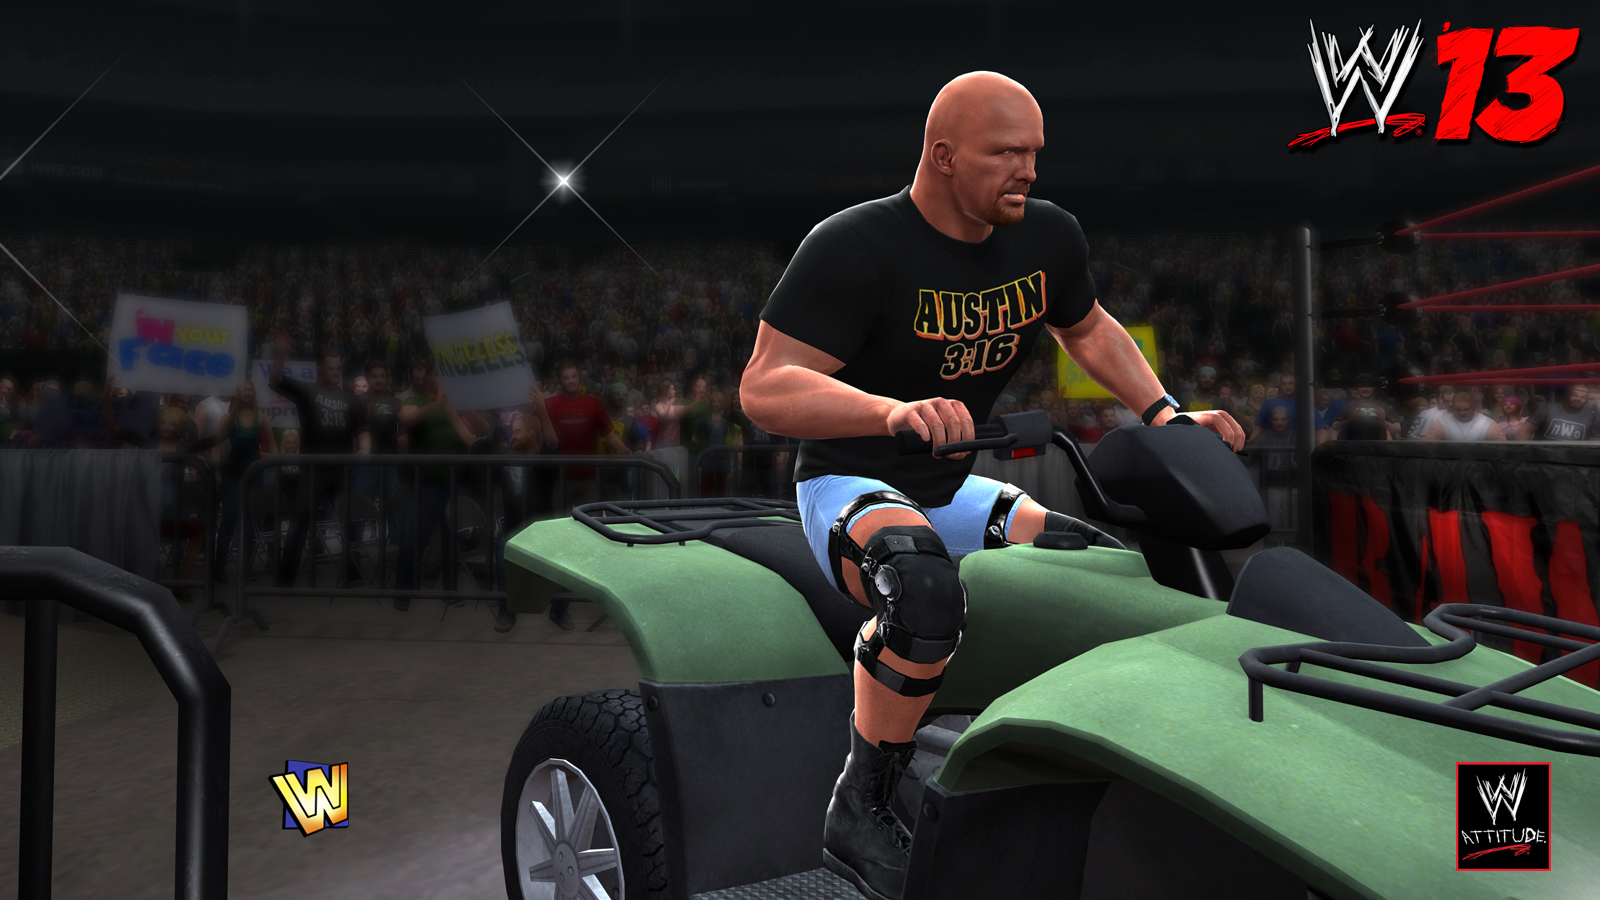 WWE 13 - CE Features Steve Austin 03